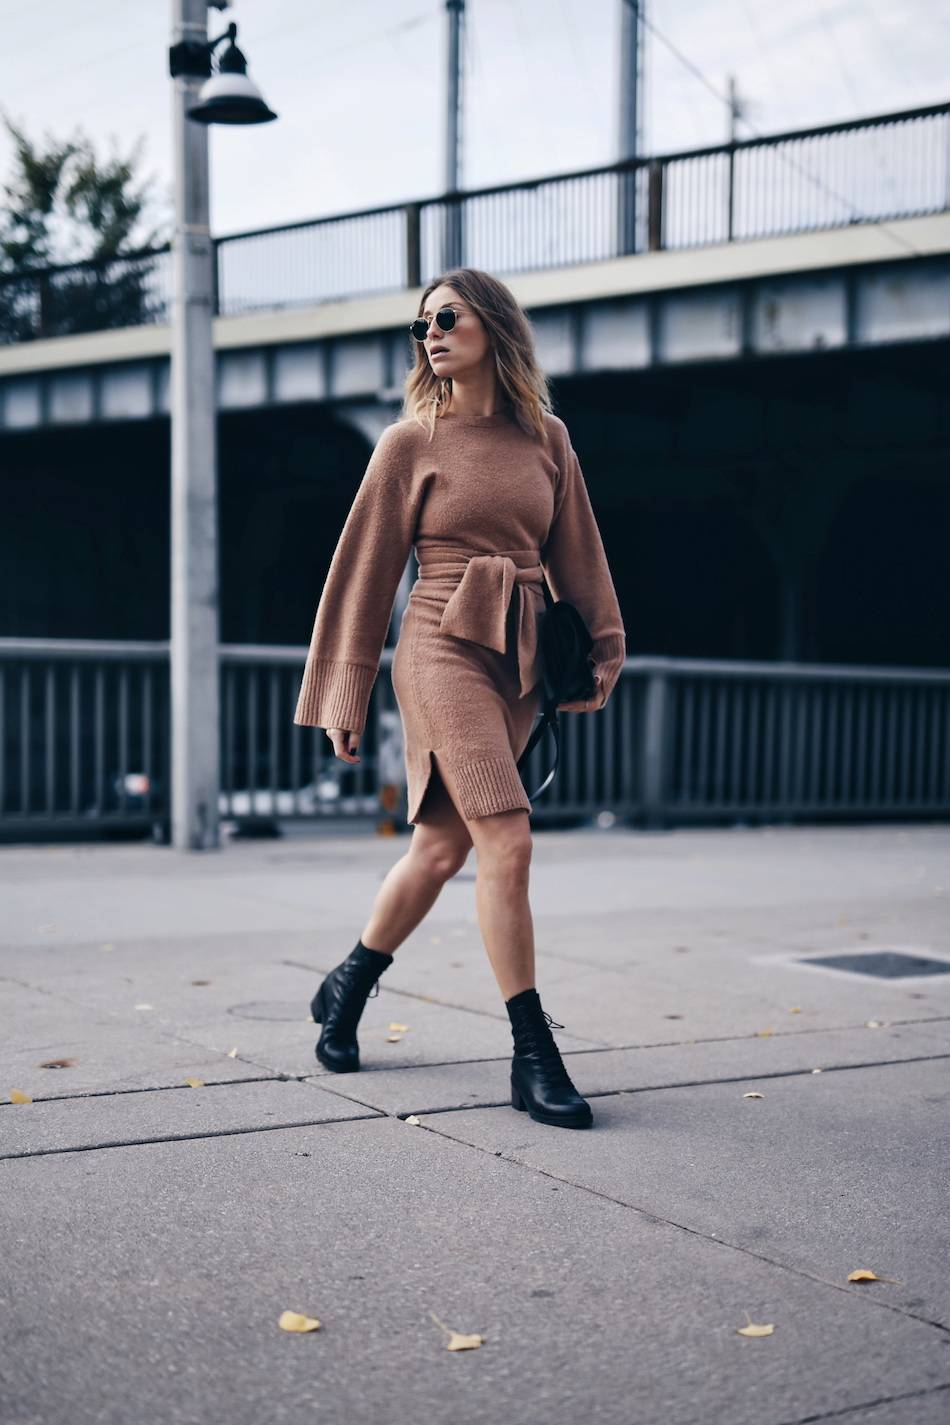 style-blogger-jill-lansky-of-the-august-diaries-wearing-3-1-phillip-lim-knit-dress-celine-black-box-bag-and-ld-tuttle-combat-boots-street-style